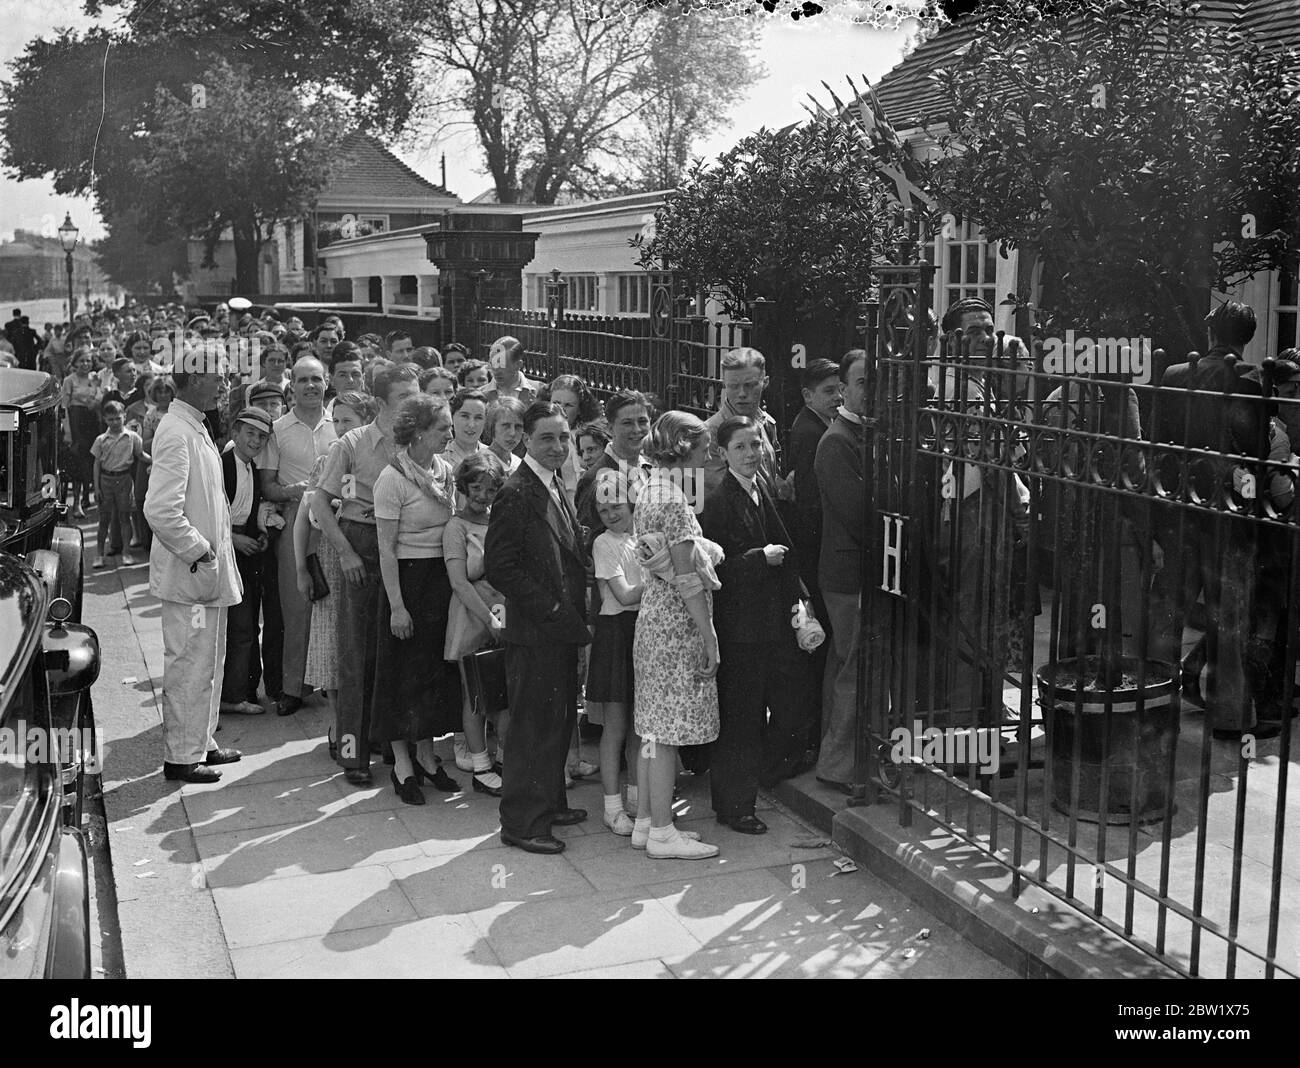 Long queue at Hammersmith open-air baths. Hundreds of people sought refuge from the heat at the Hammersmith open-air baths. A long queue waited for admission throughout the afternoon. Photo shows, the queue at Hammersmith baths. 29 May 1937 Stock Photo